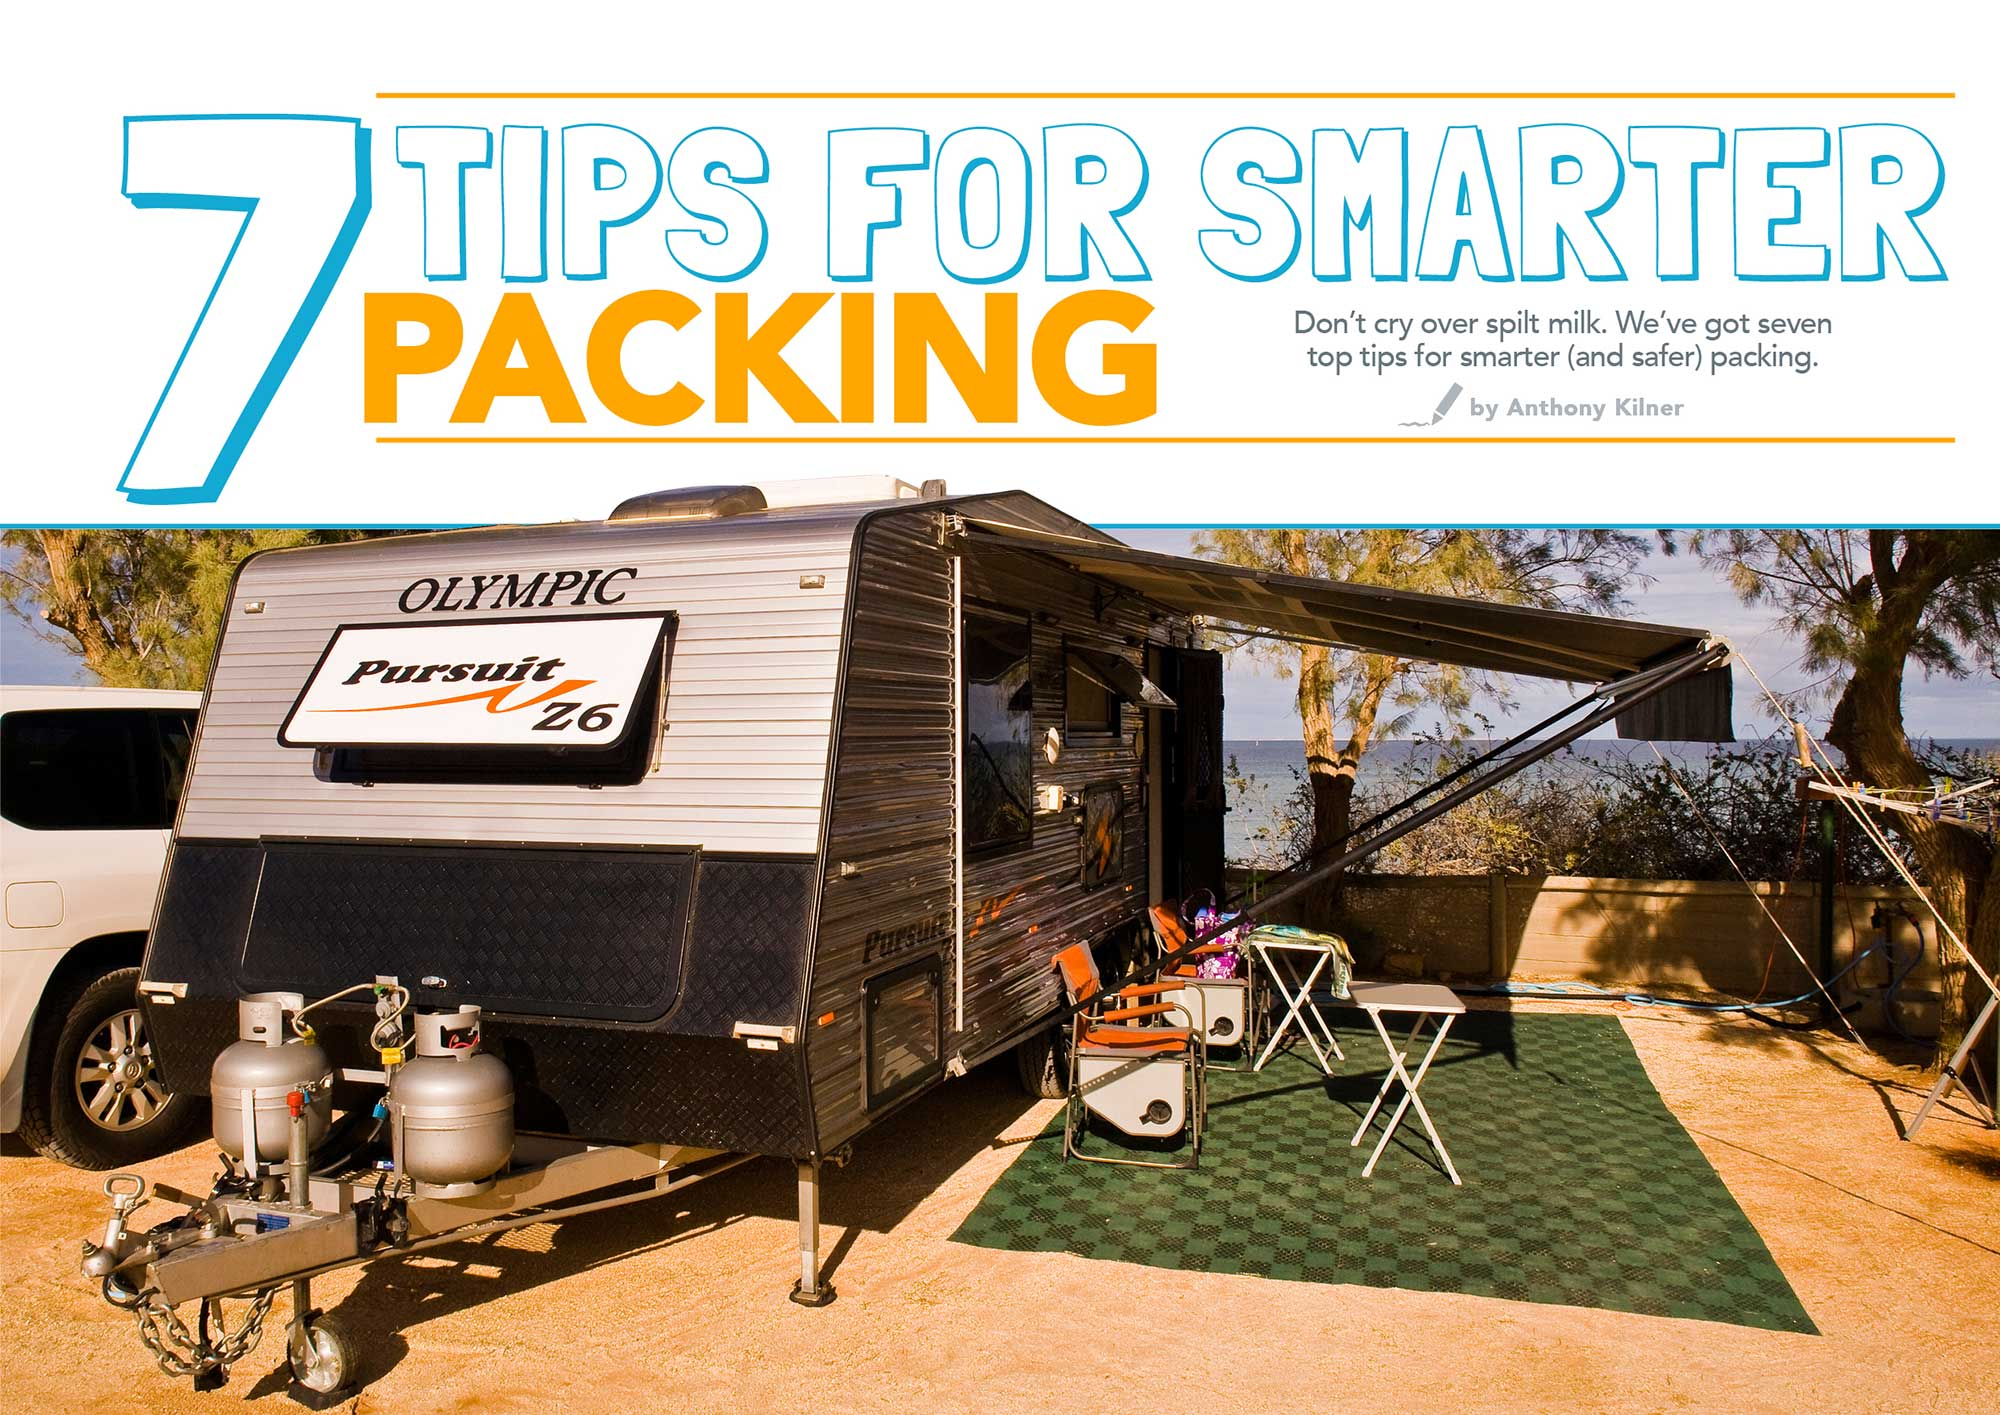 7 Tips for Smarter Packing